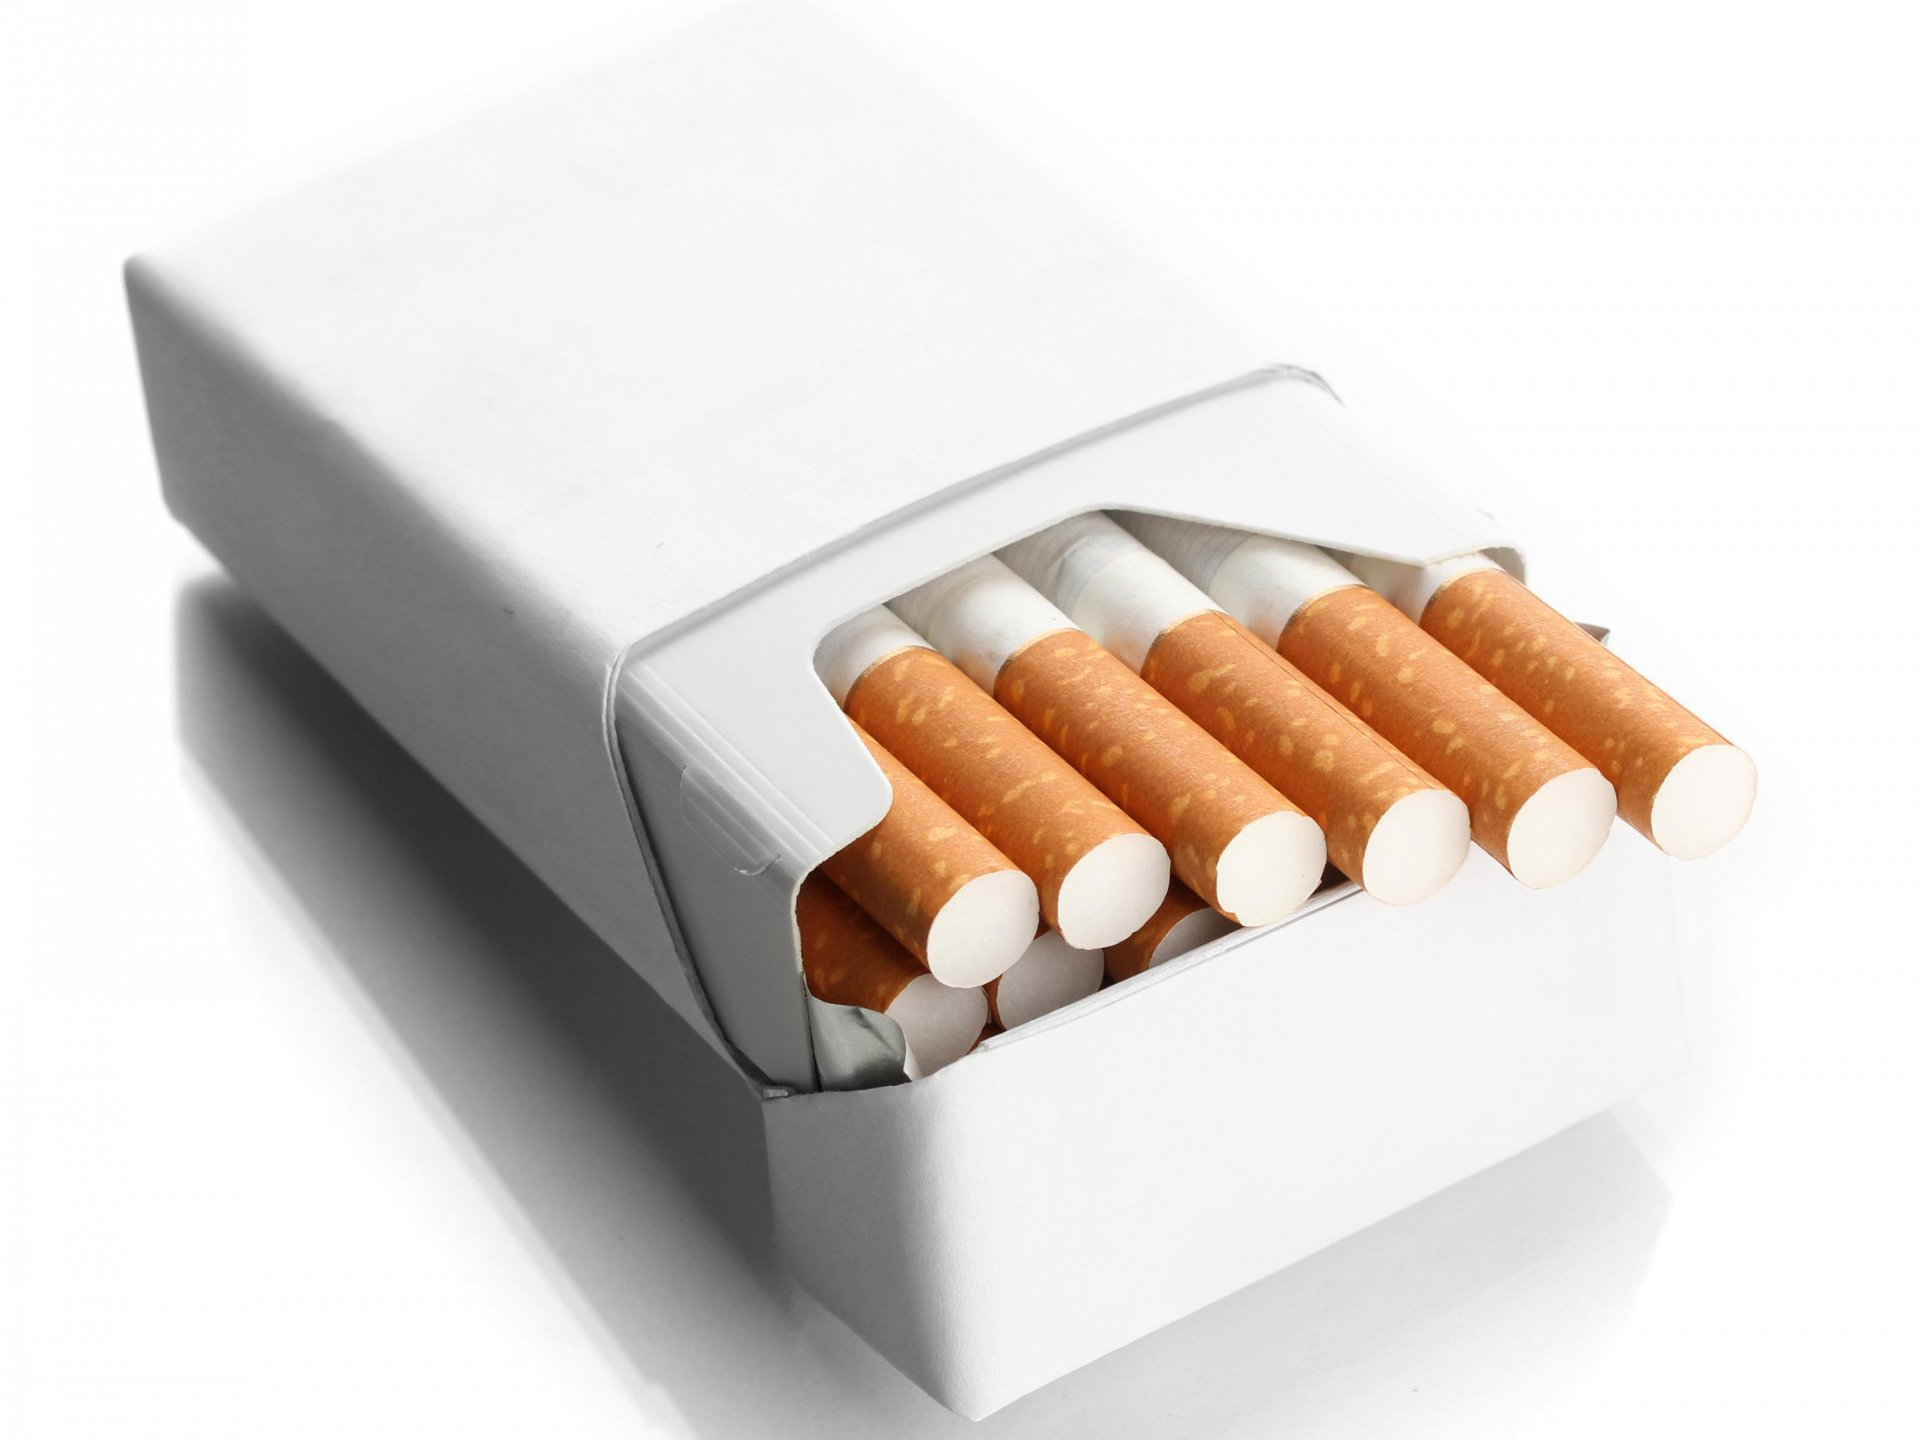 Connect with SBXA For New South Wales Based CTC Tobacconist